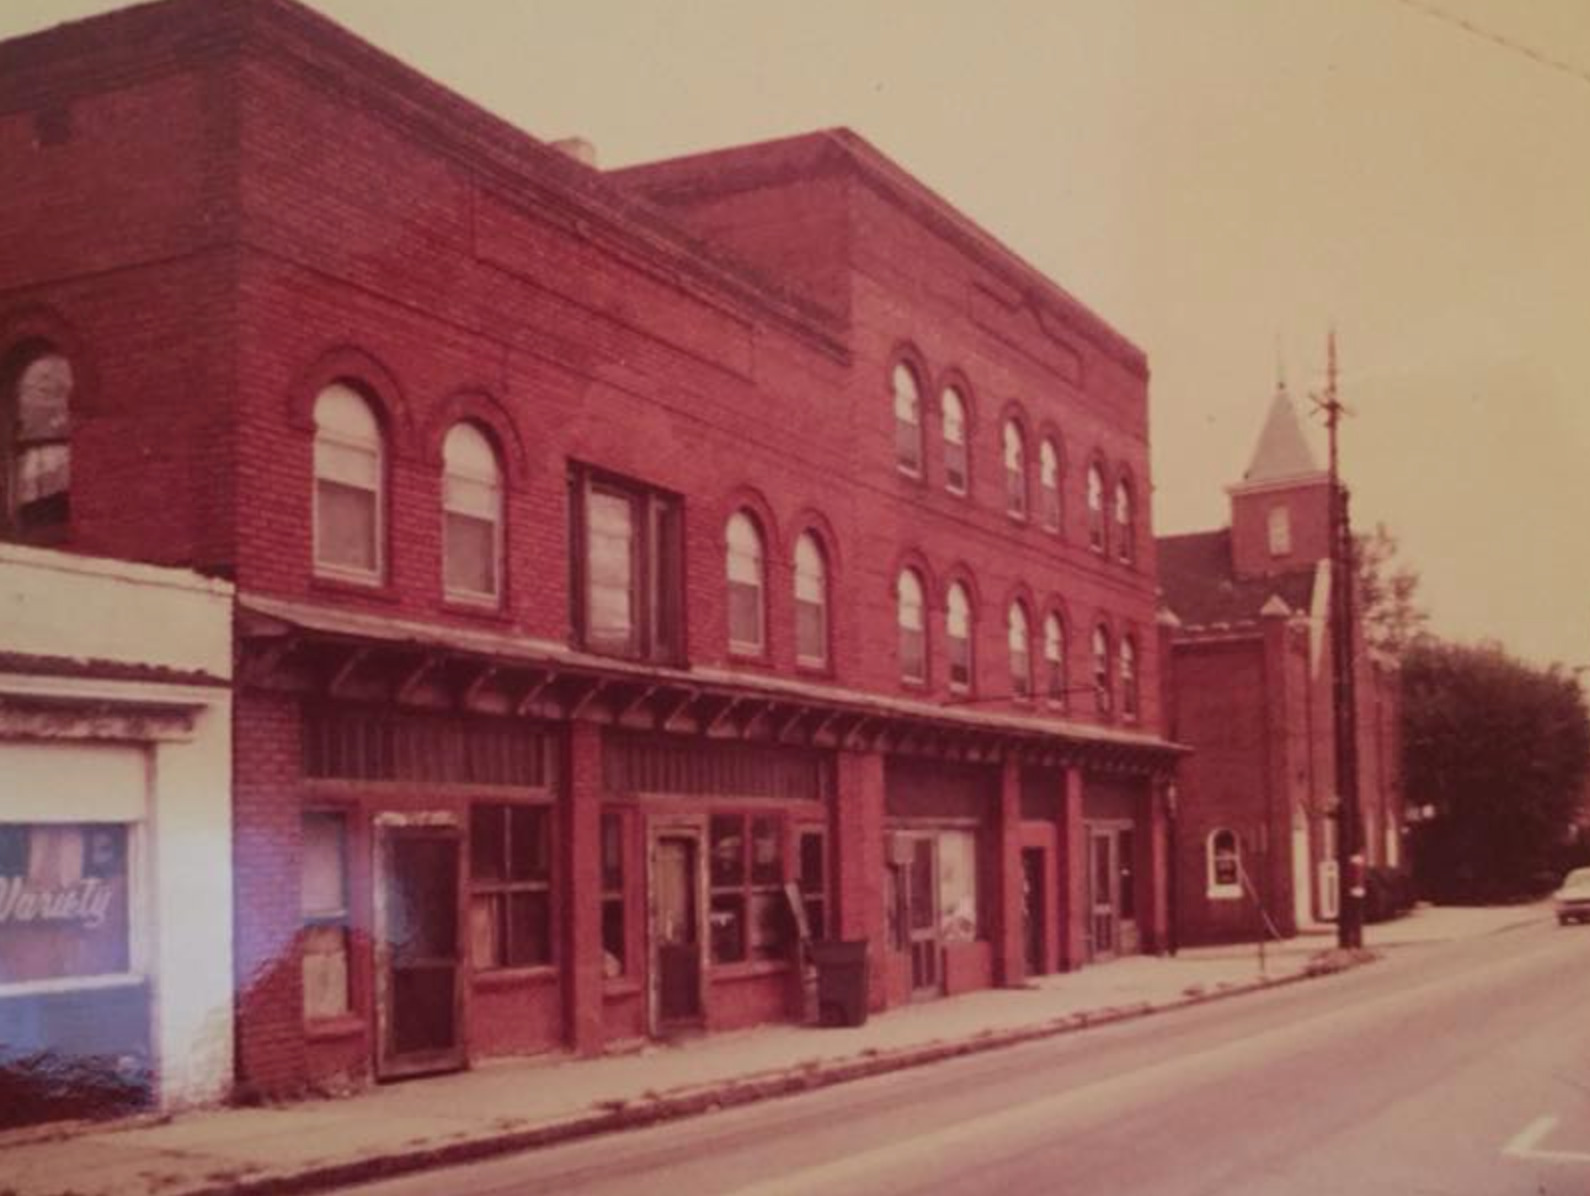 A historic image of the Kilby Hotel and arcade building in High Point, NC.